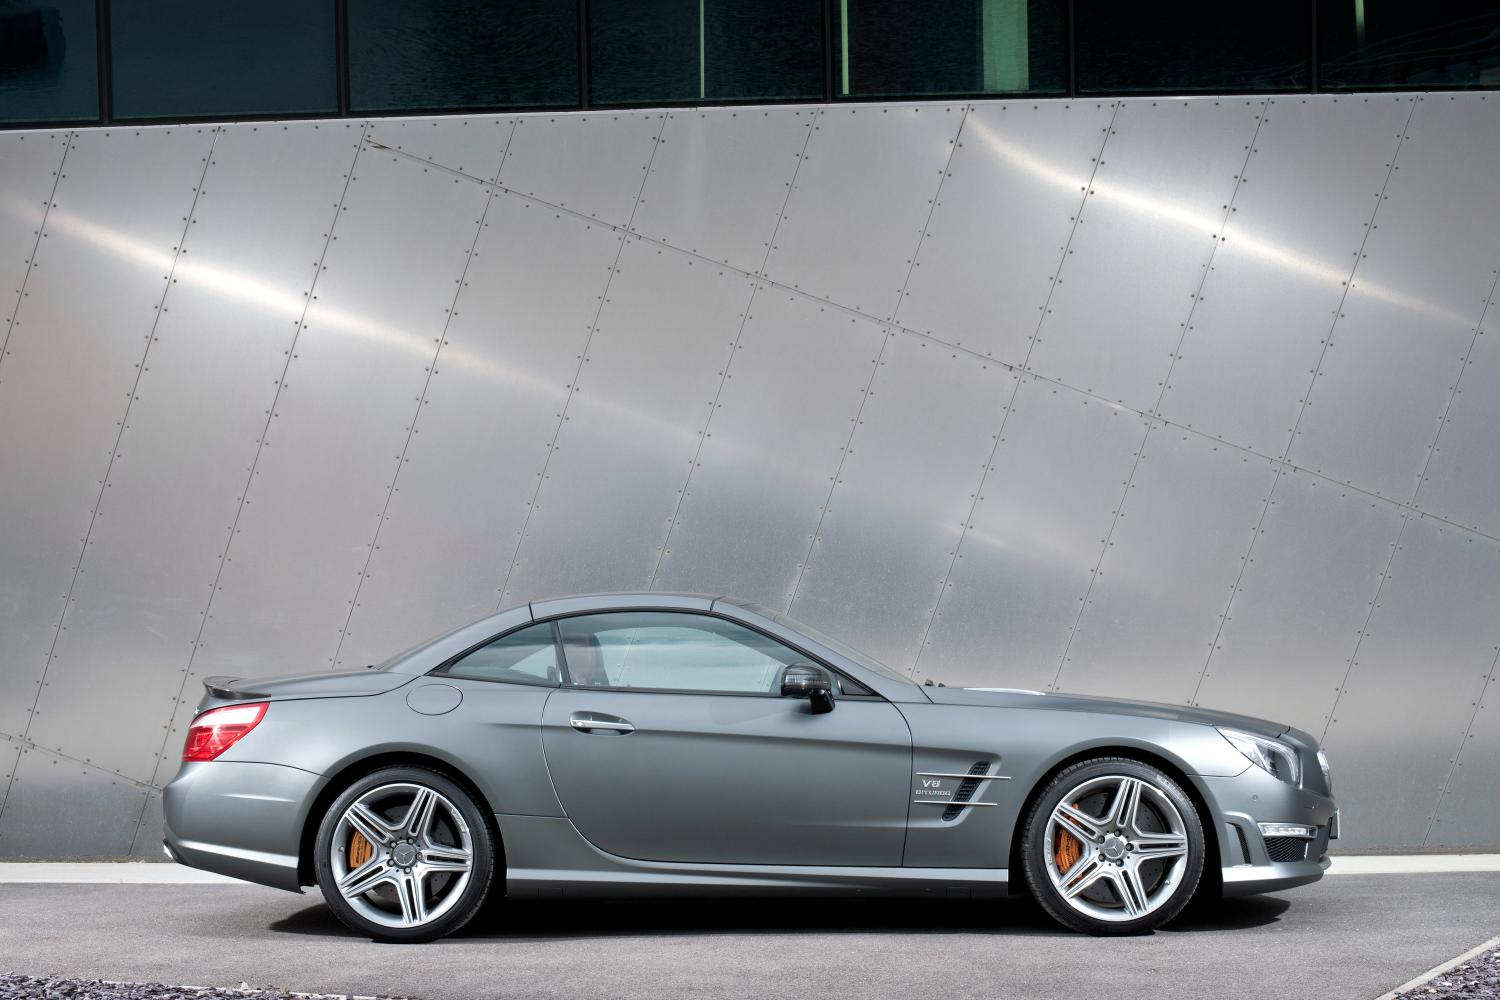 Mercedes Benz Sls Amg Review >> Mercedes SL 63 AMG review 2013